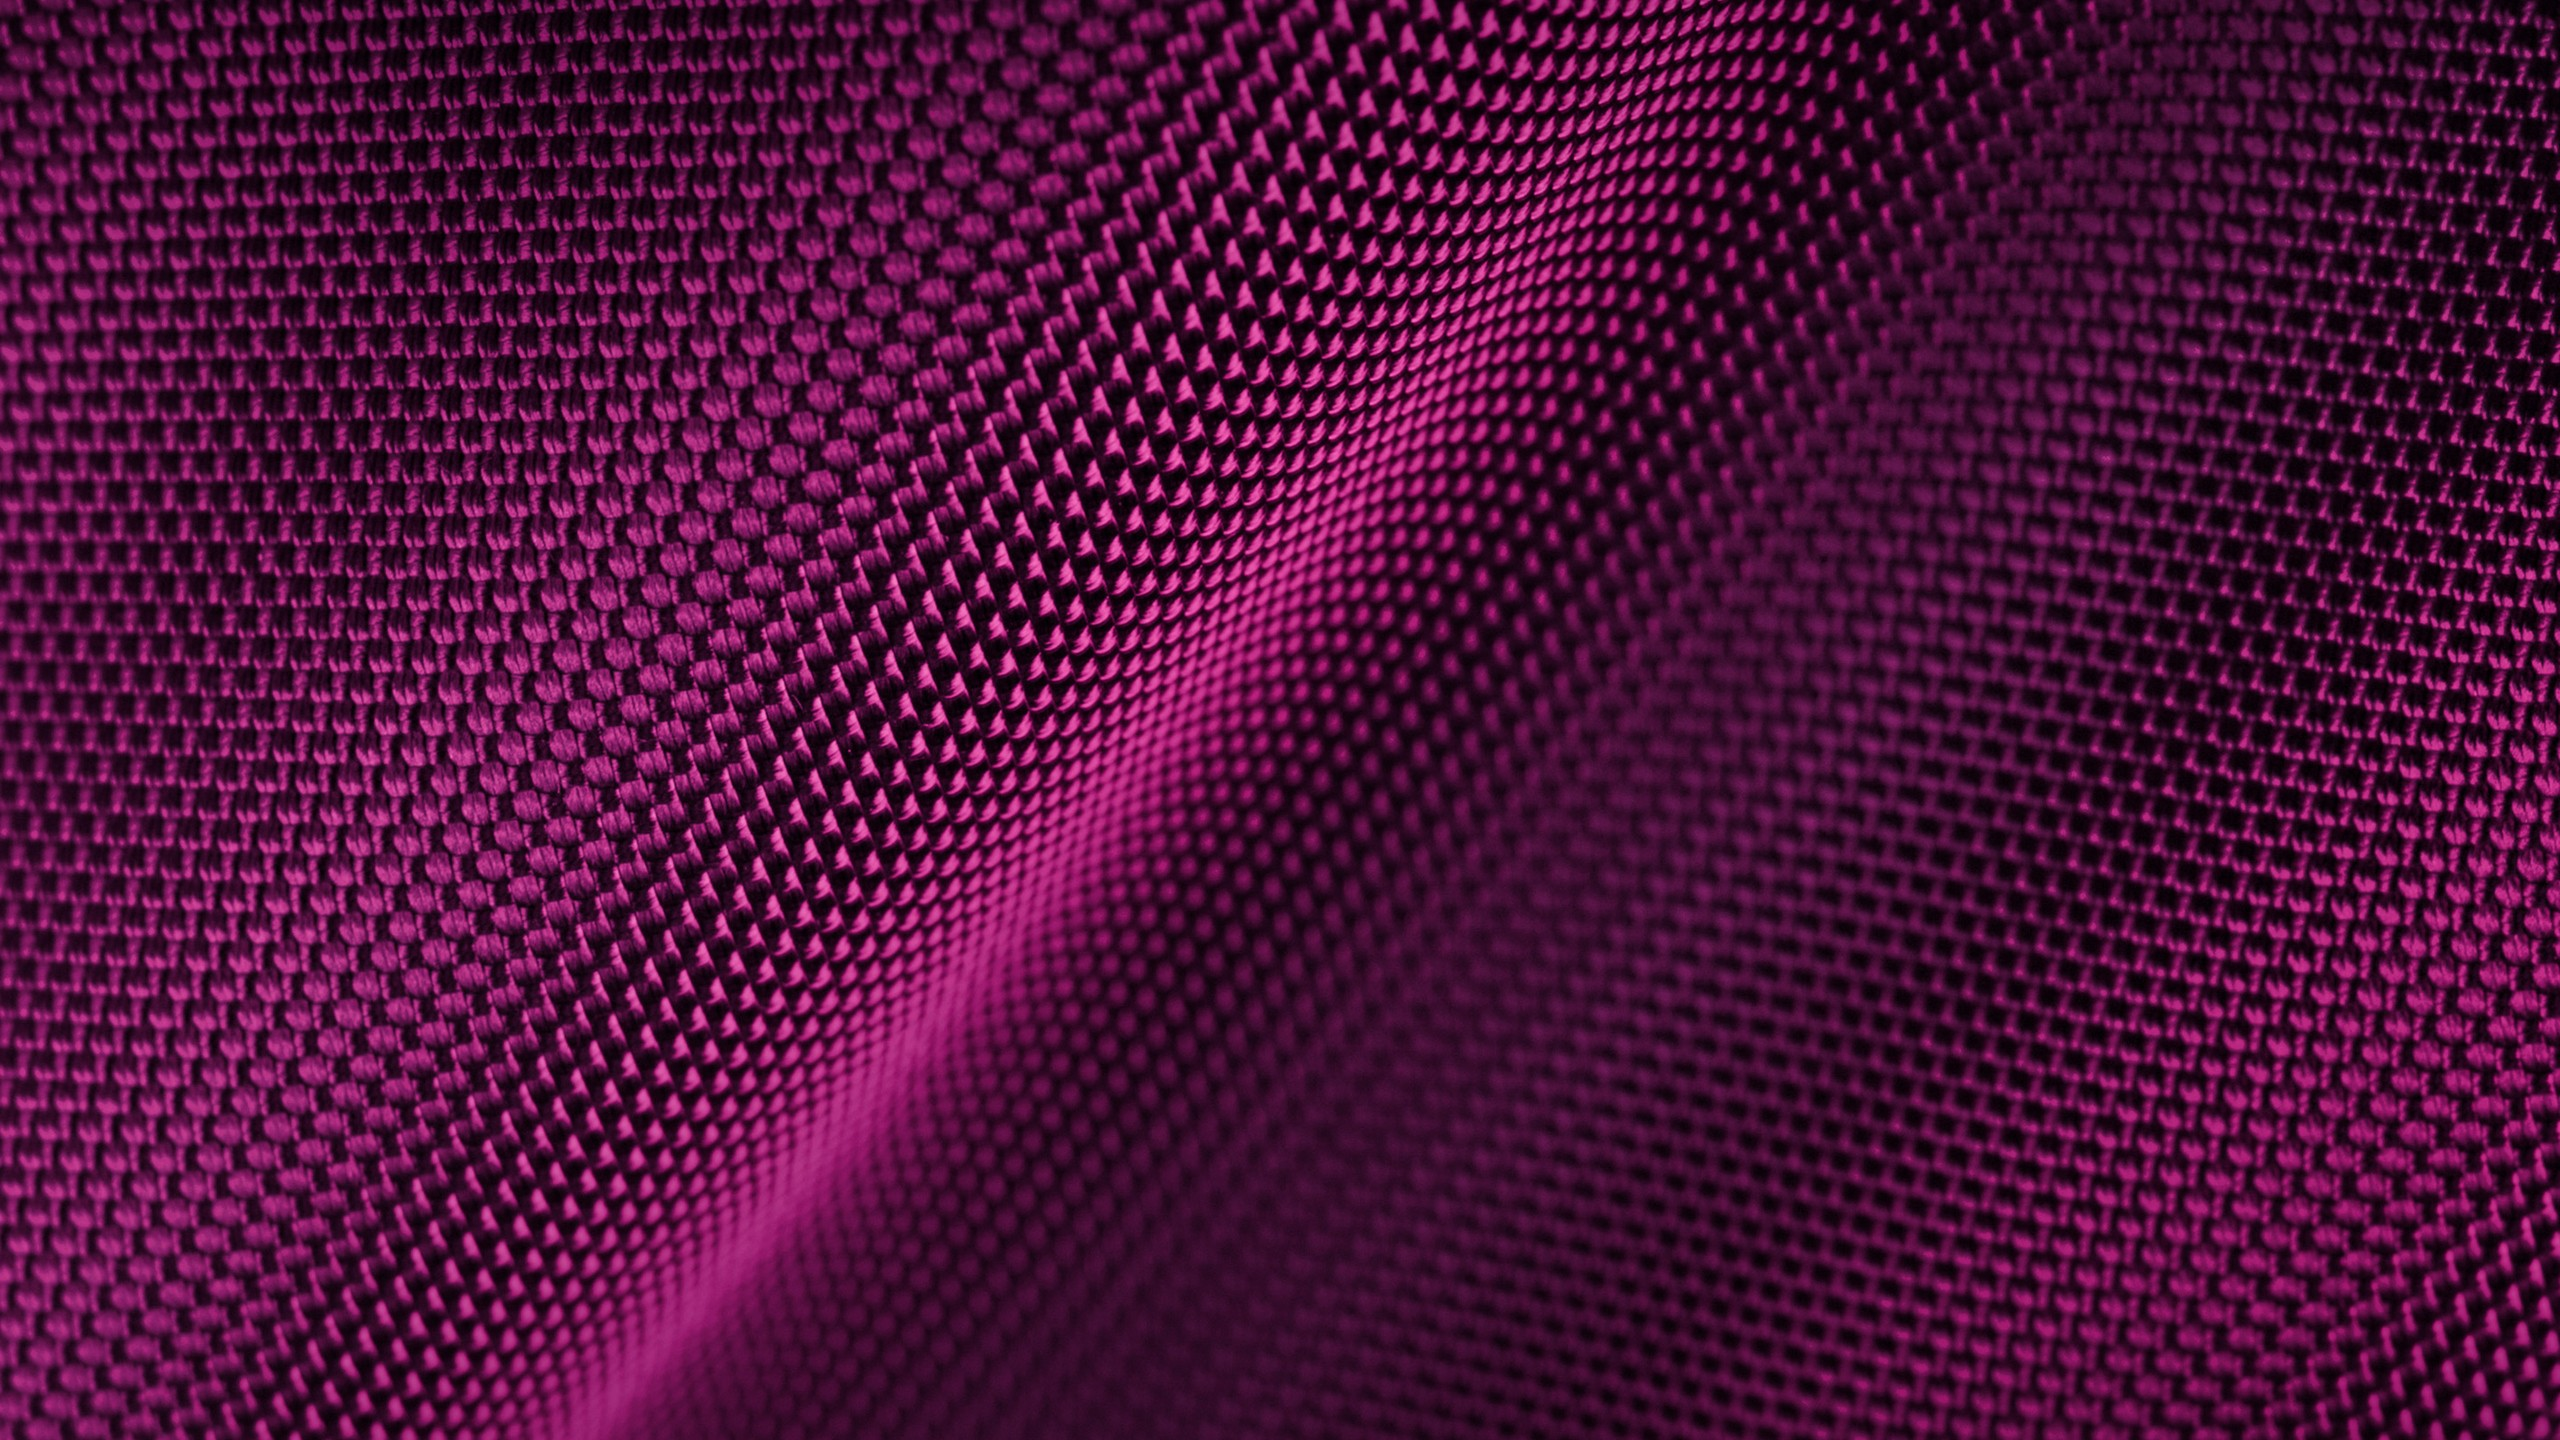 Cute Pink Wallpapers Download Pink Texture Fabric Wallpapers Hd Wallpapers Id 23042